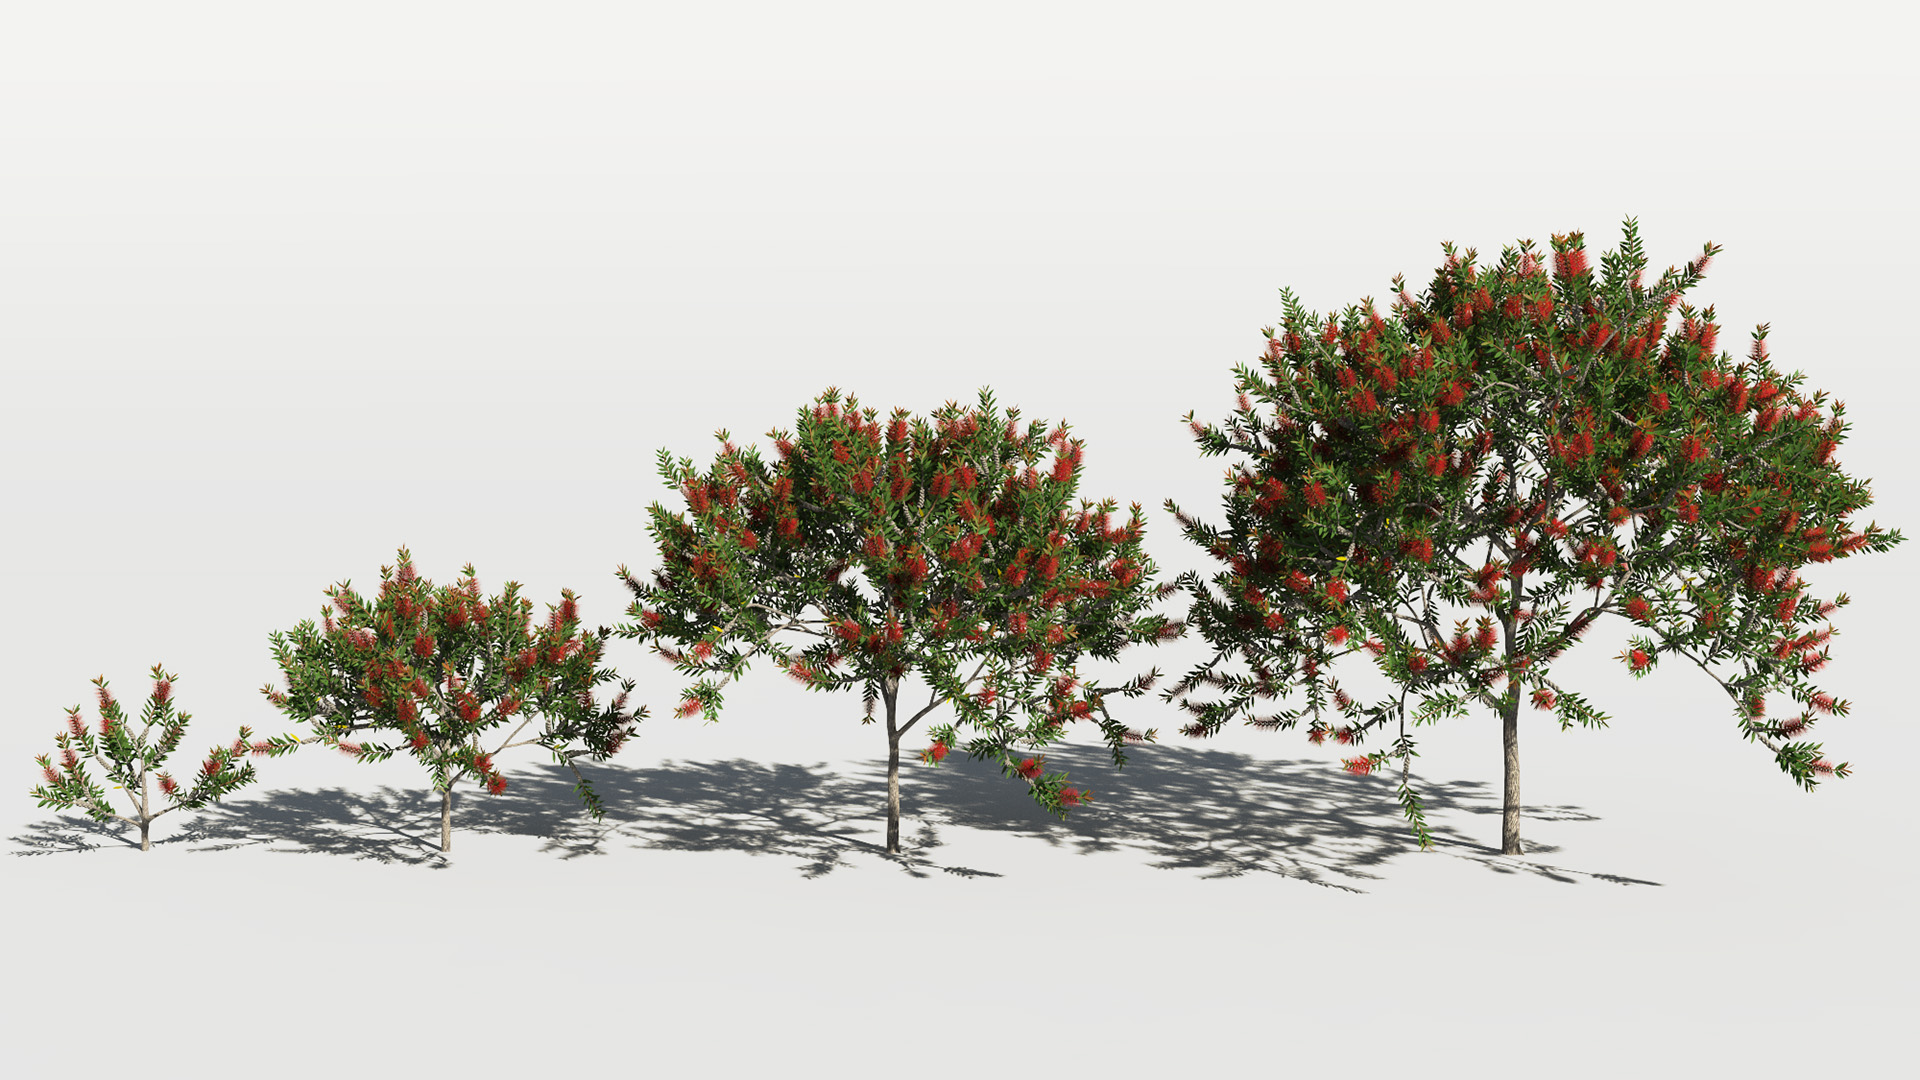 3D model of the Bottlebrush laevis Callistemon laevis